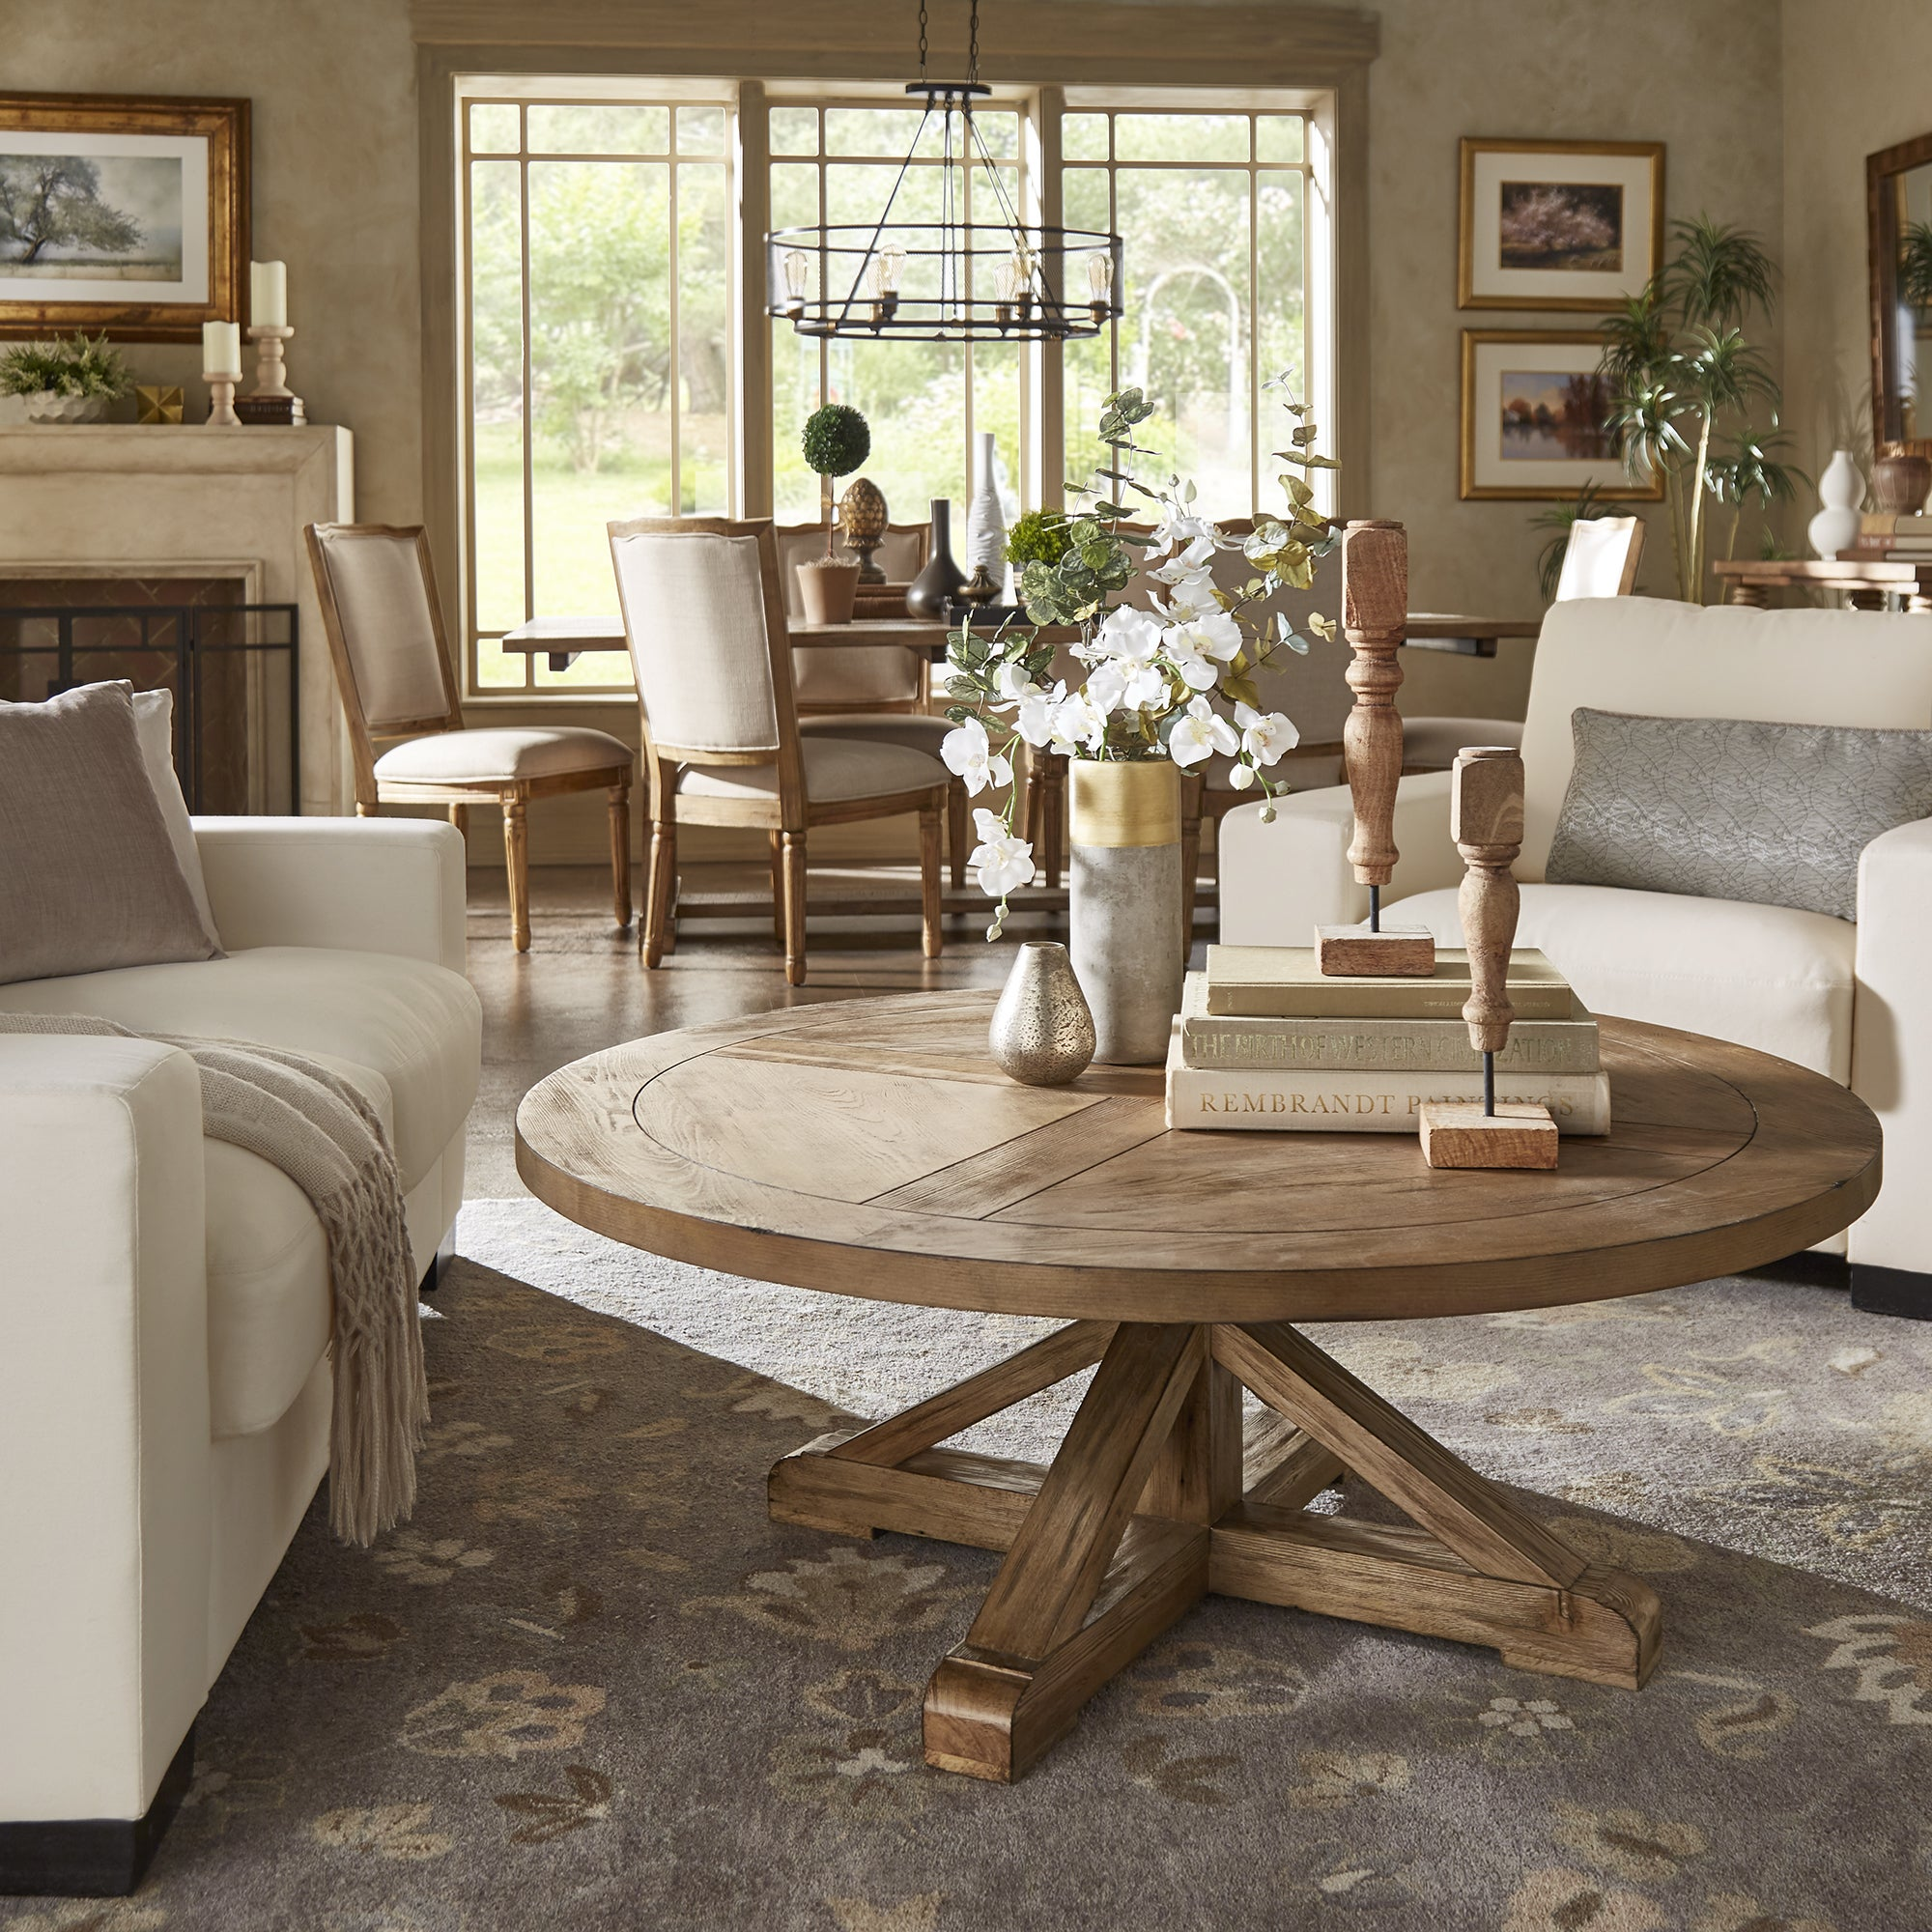 Shop Benchwright Rustic X Base Round Pine Wood Coffee Table By Inspire Q Artisan On Sale Overstock 22044742